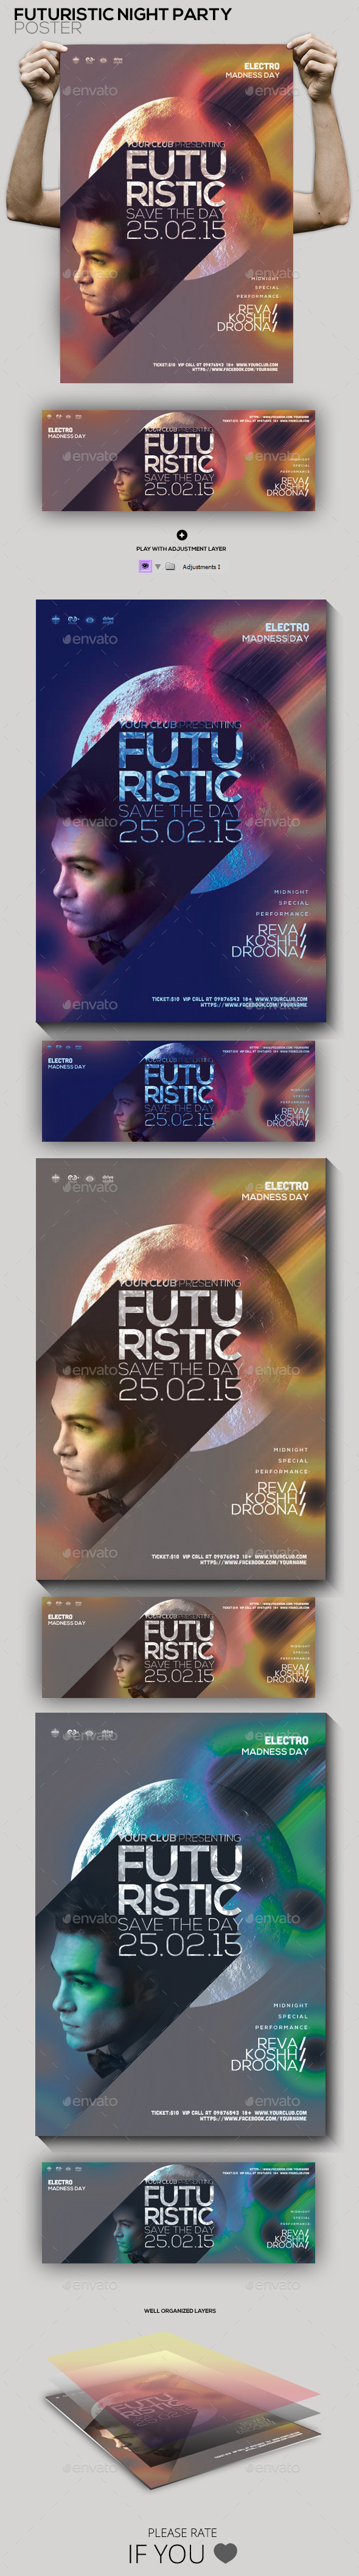 Futuristic Guest Dj Party Flyer/Poster - Clubs & Parties Events